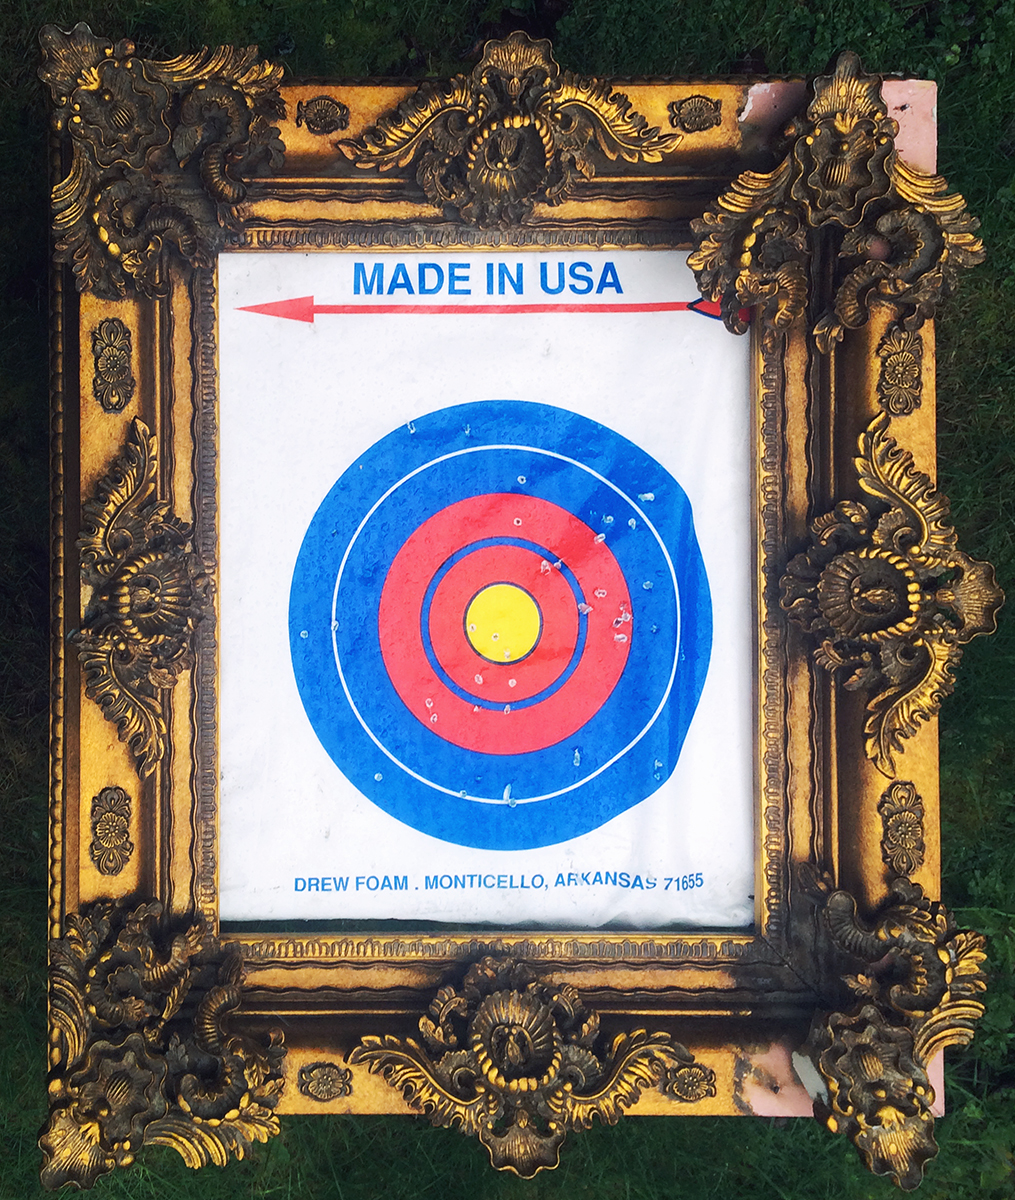 """Made in USA"" Archery Target and Frame 36"" x 39"" x 16"" 2019 $3500  I cannot recall where and when I picked up the enormous gauche frames, but they have been used in AFH exhibits since at least 2005. The used archery targets are a new find."